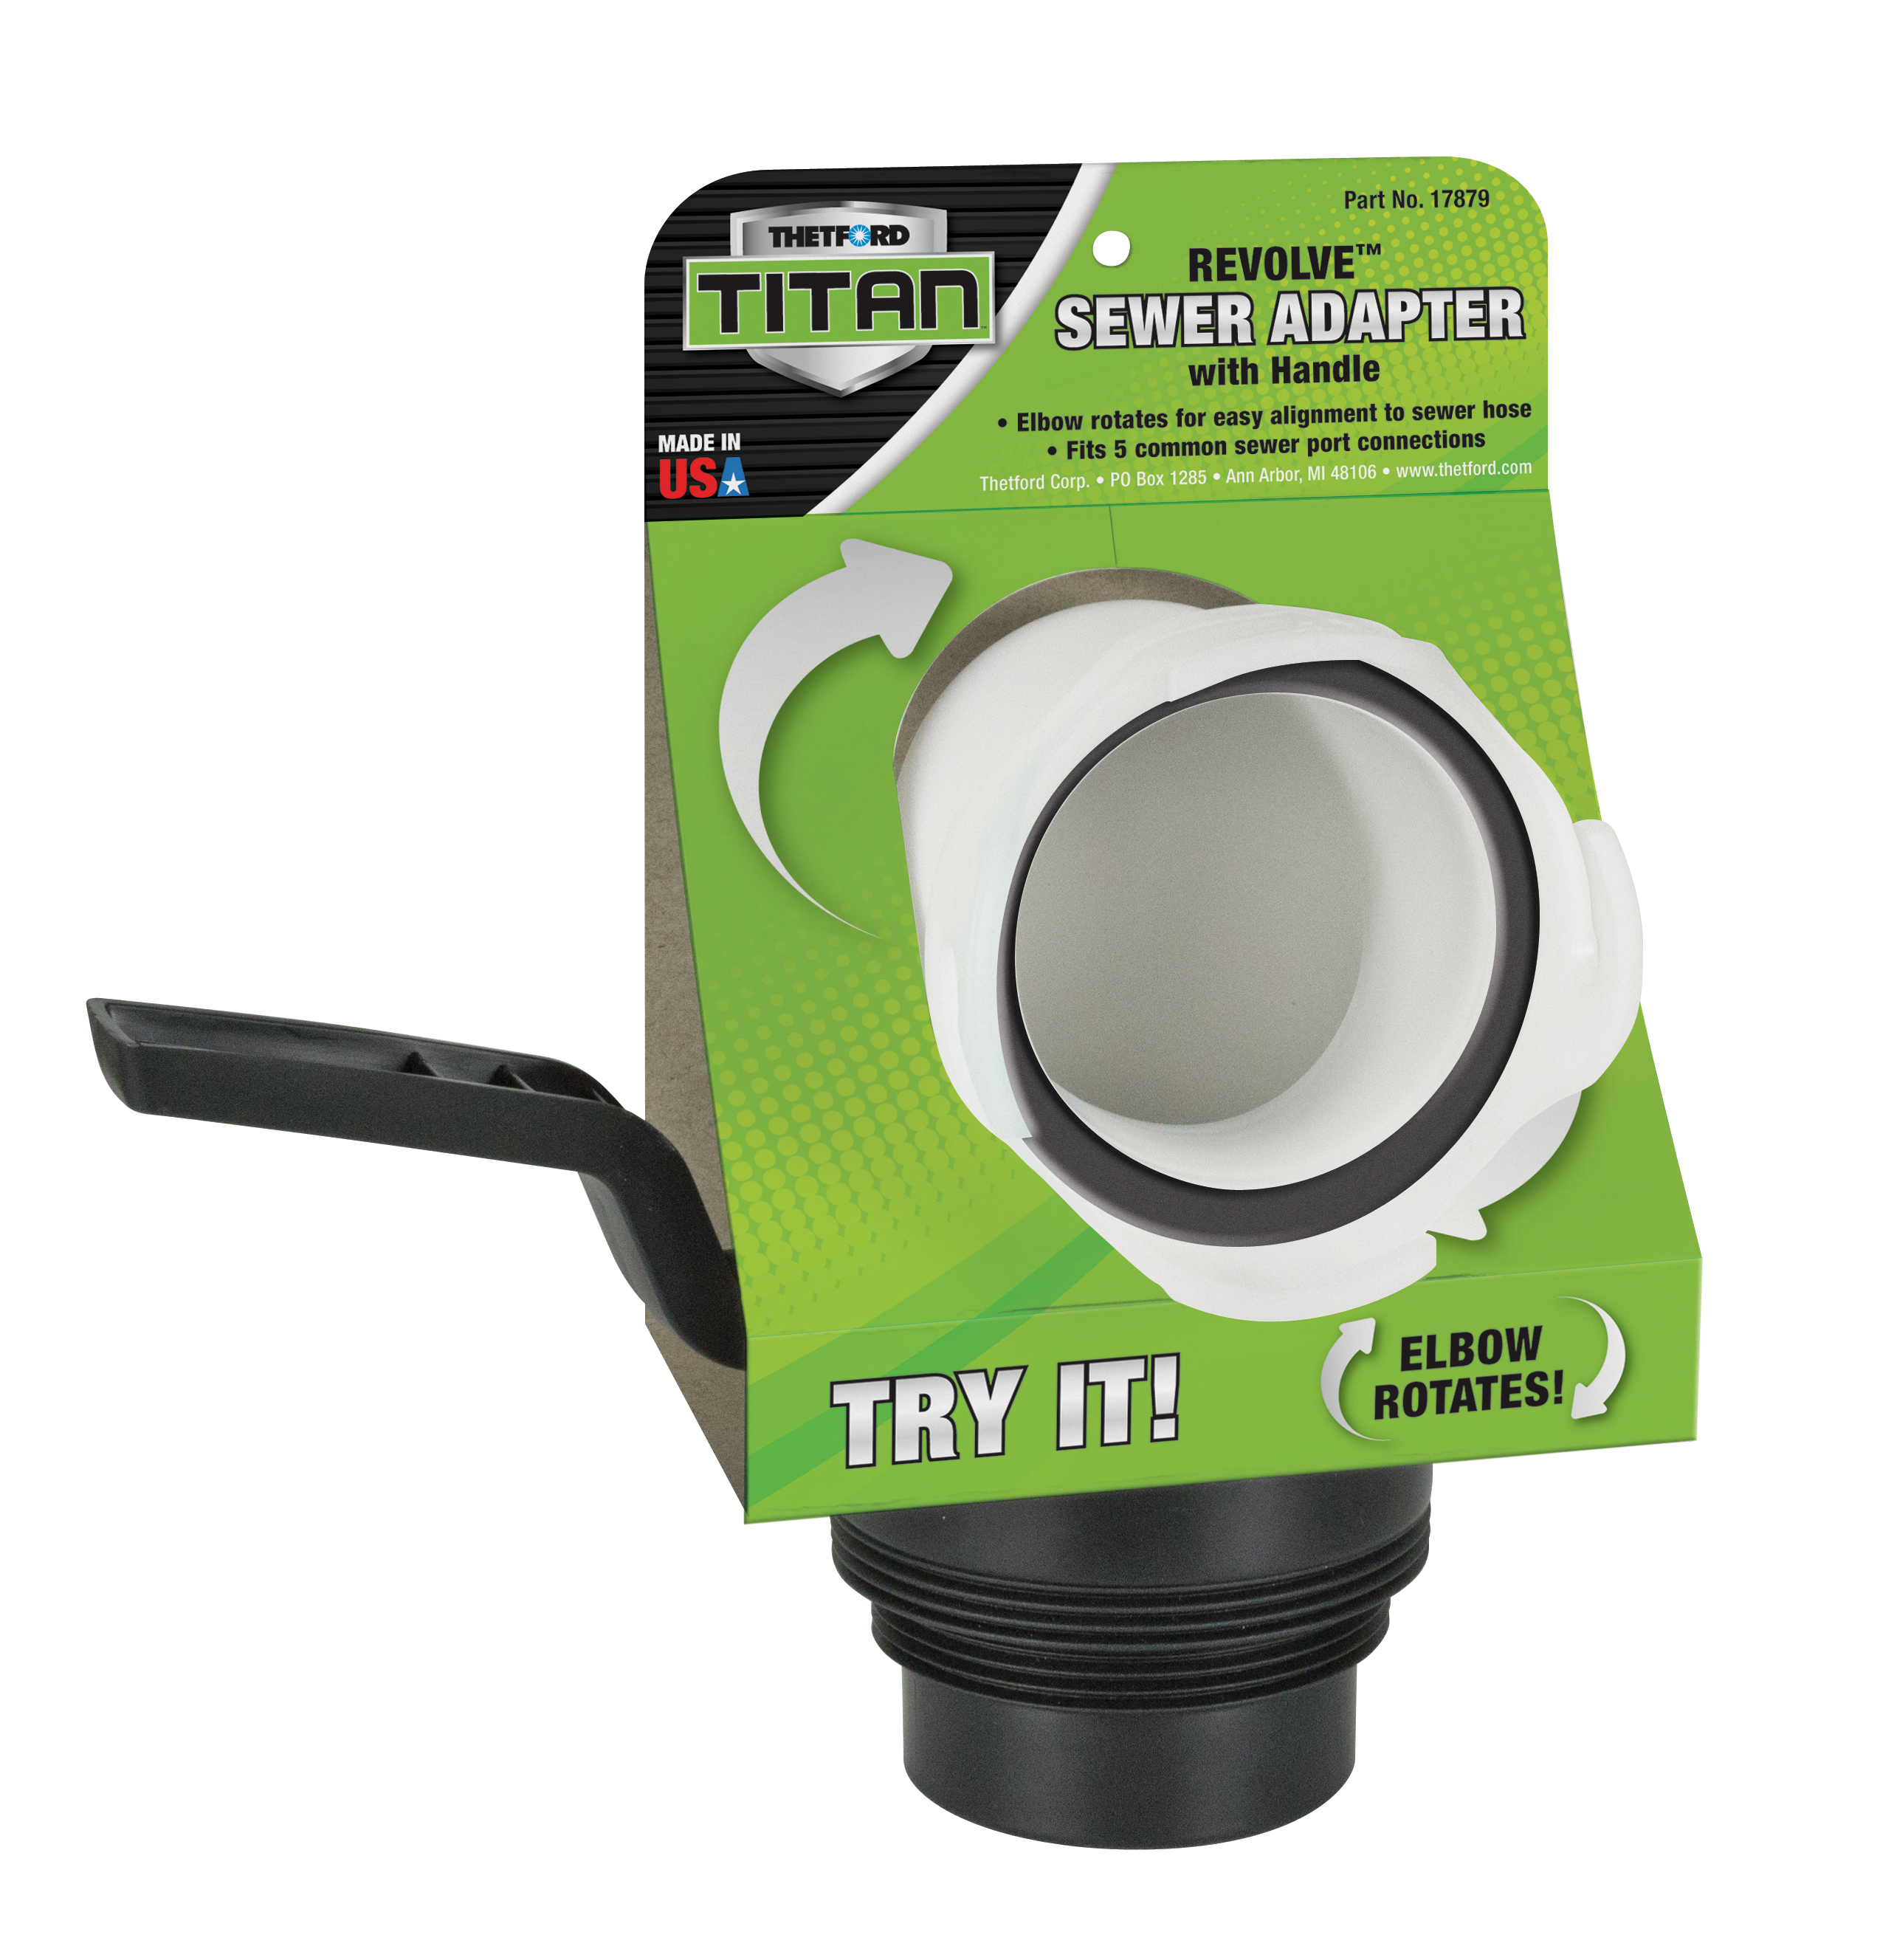 TitanR Premium RV Sewer Accessories